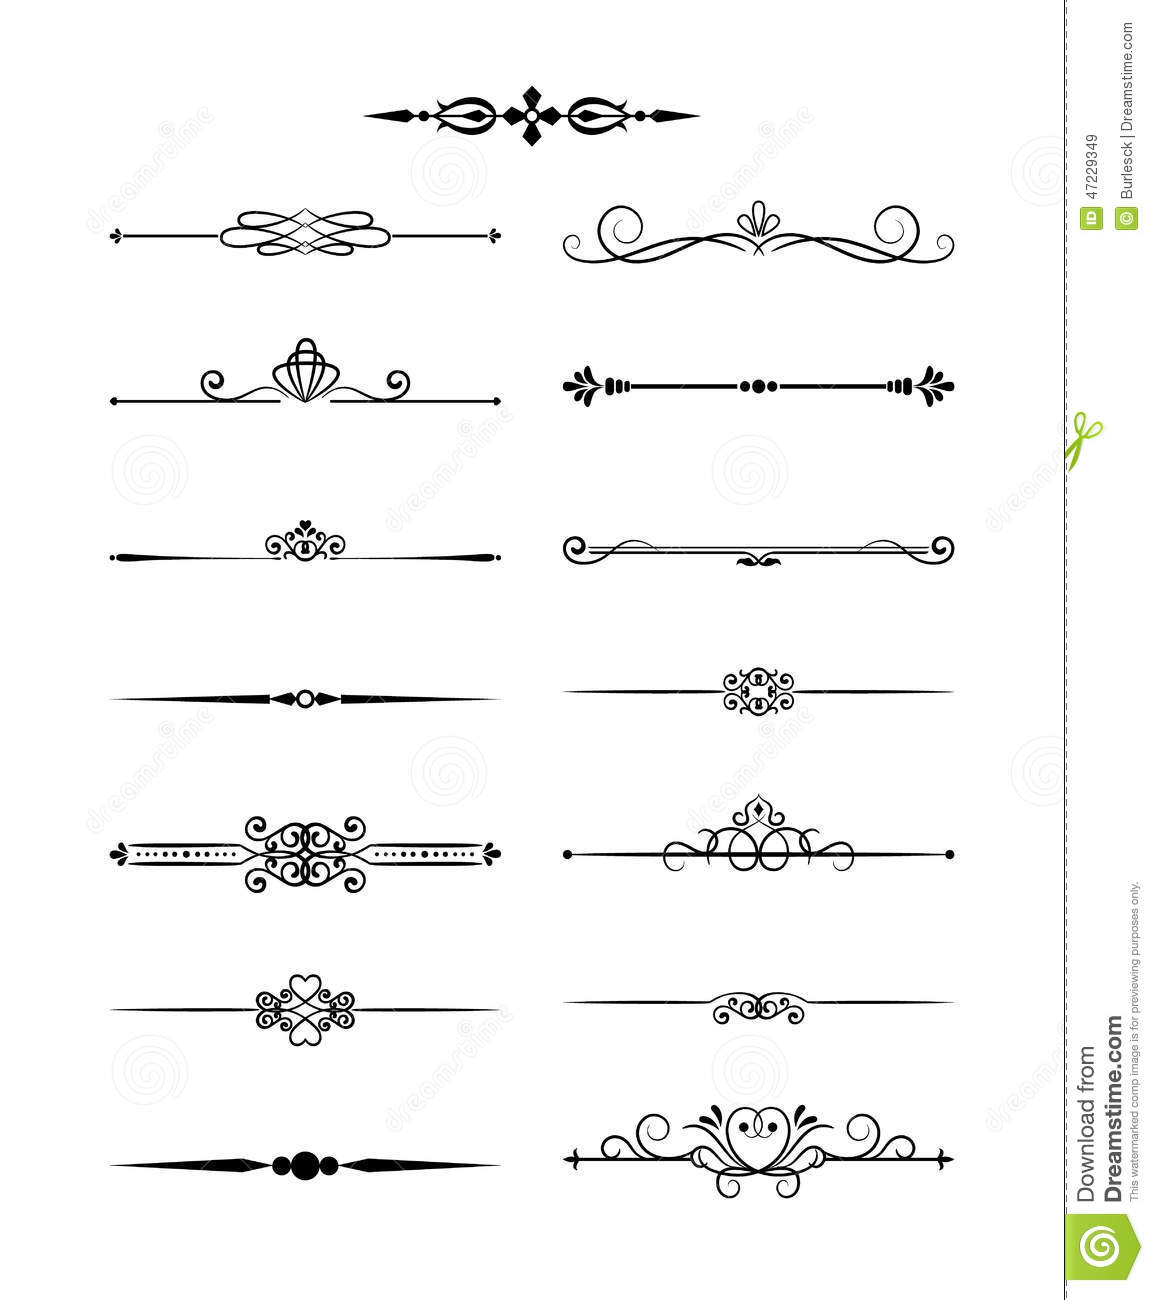 Floral Vintage Dividers Elements For Page Decor Stock Vector - Image ...